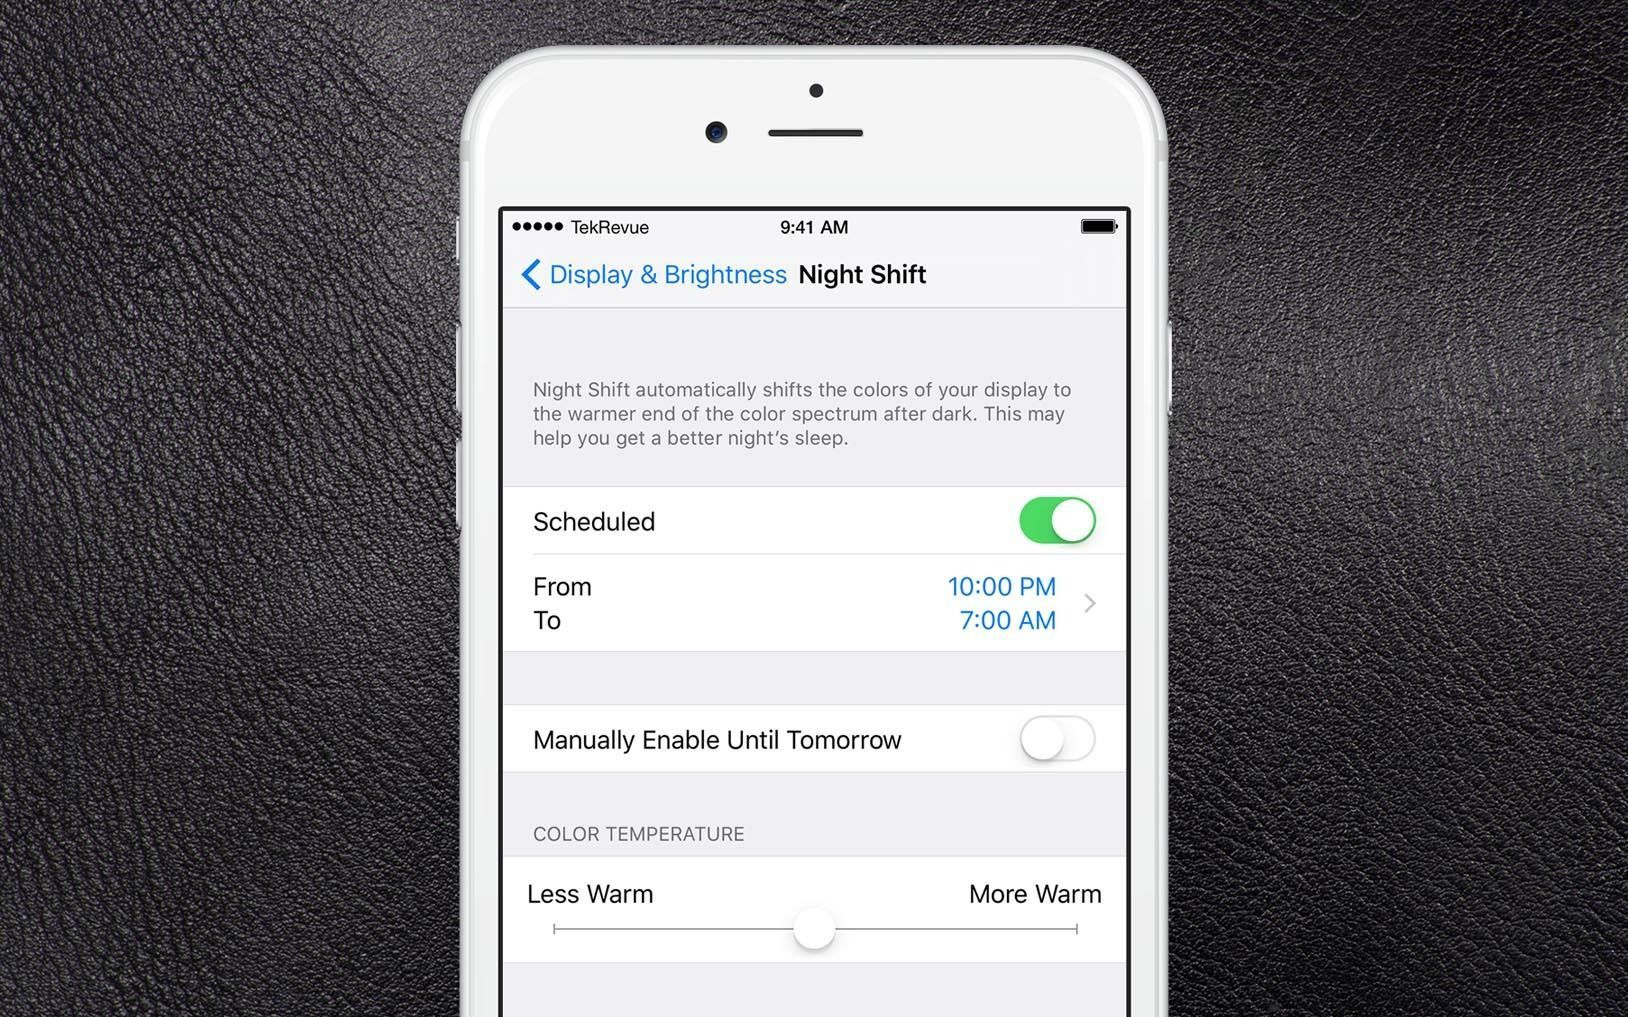 Tutorial to Use Night Shift on your iPhone or iPad Ipad